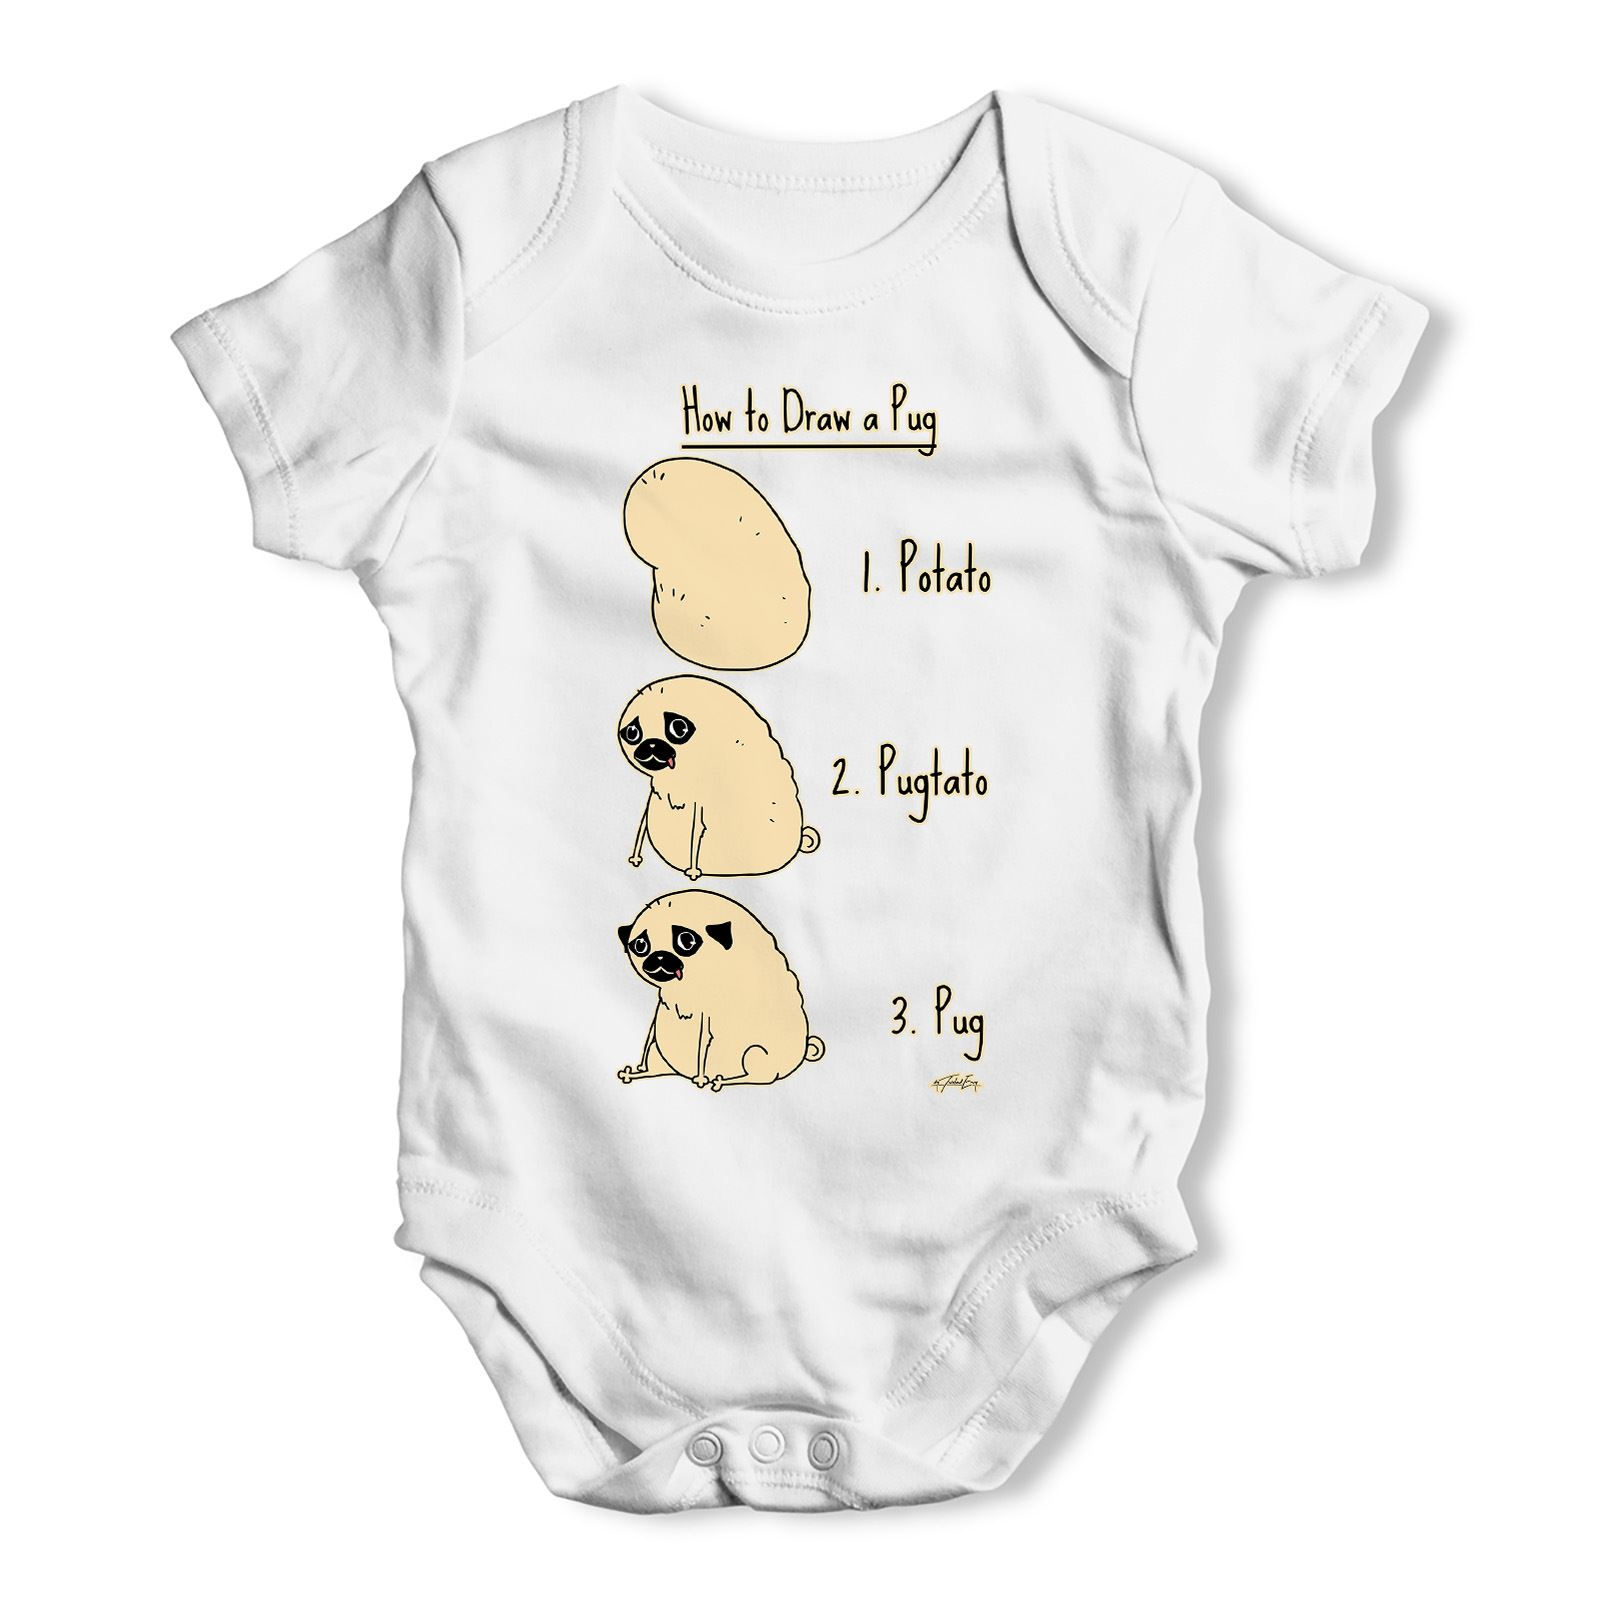 Shop for Newborn Baby Clothes. Browse our range of designer newborn boy and girl clothing from our Baby & Child range at John Lewis. Free Delivery on orders over £